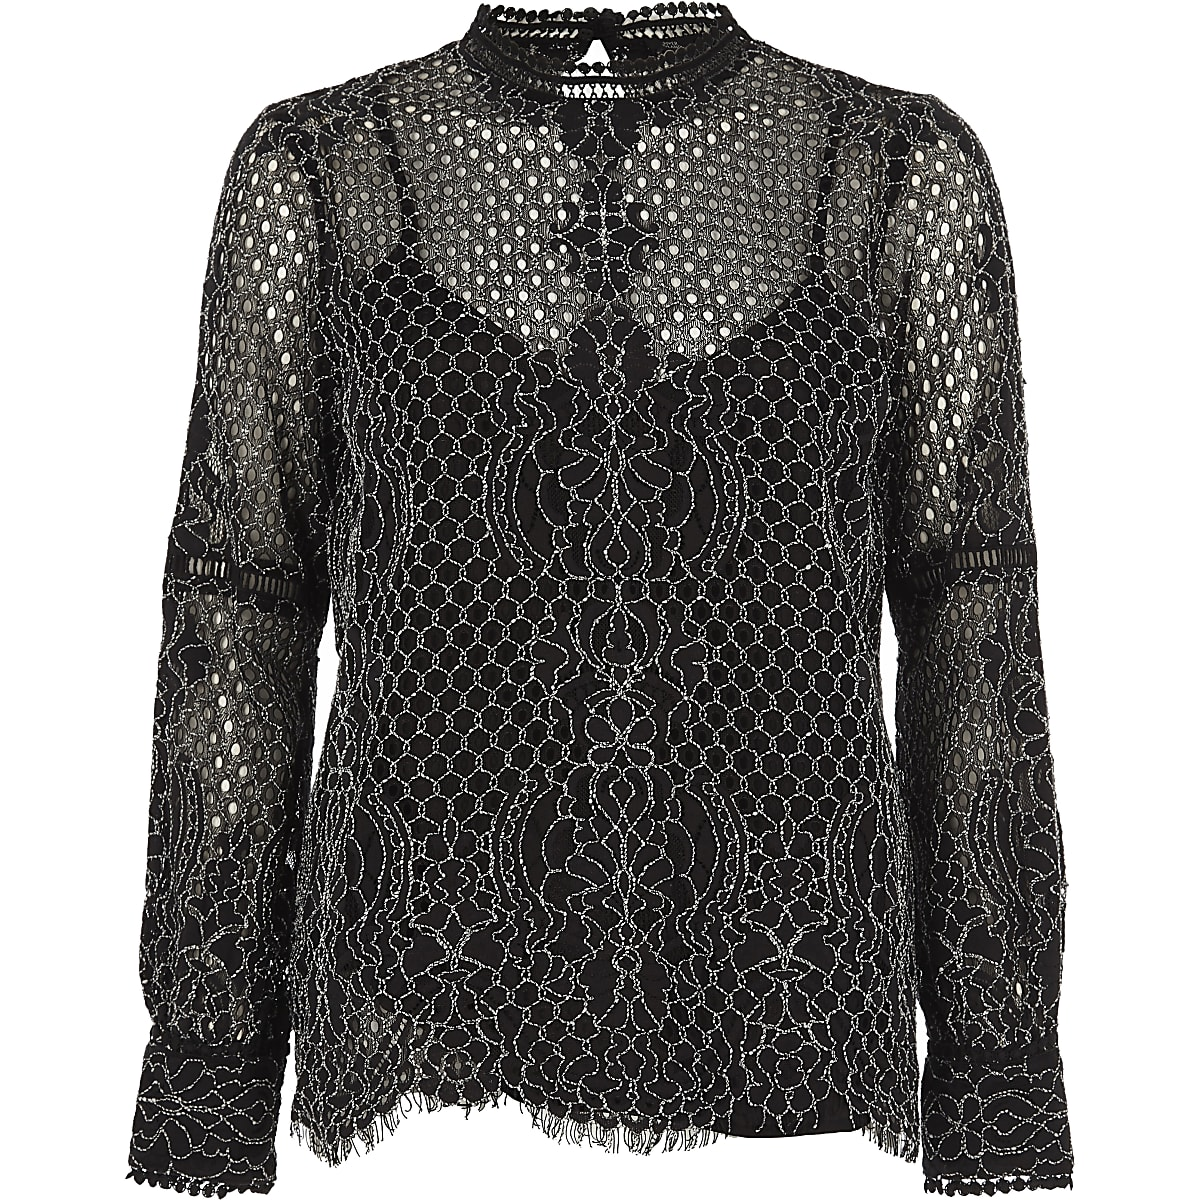 558f1342839 Black lace high neck long sleeve top